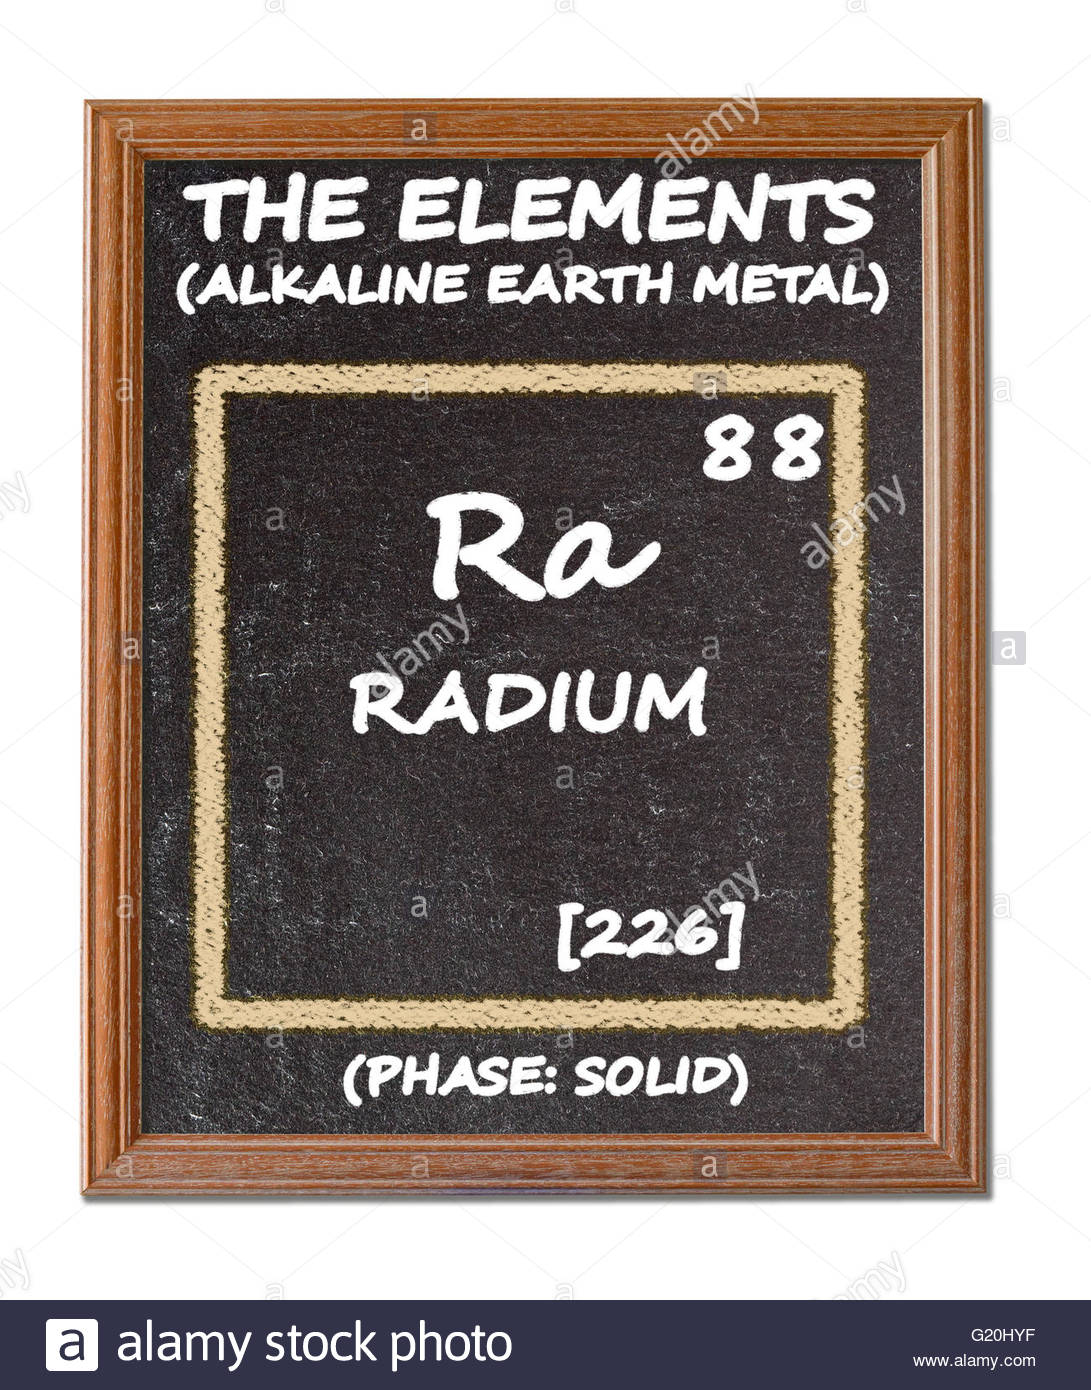 Radium details from the periodic table stock photo royalty free radium details from the periodic table gamestrikefo Images